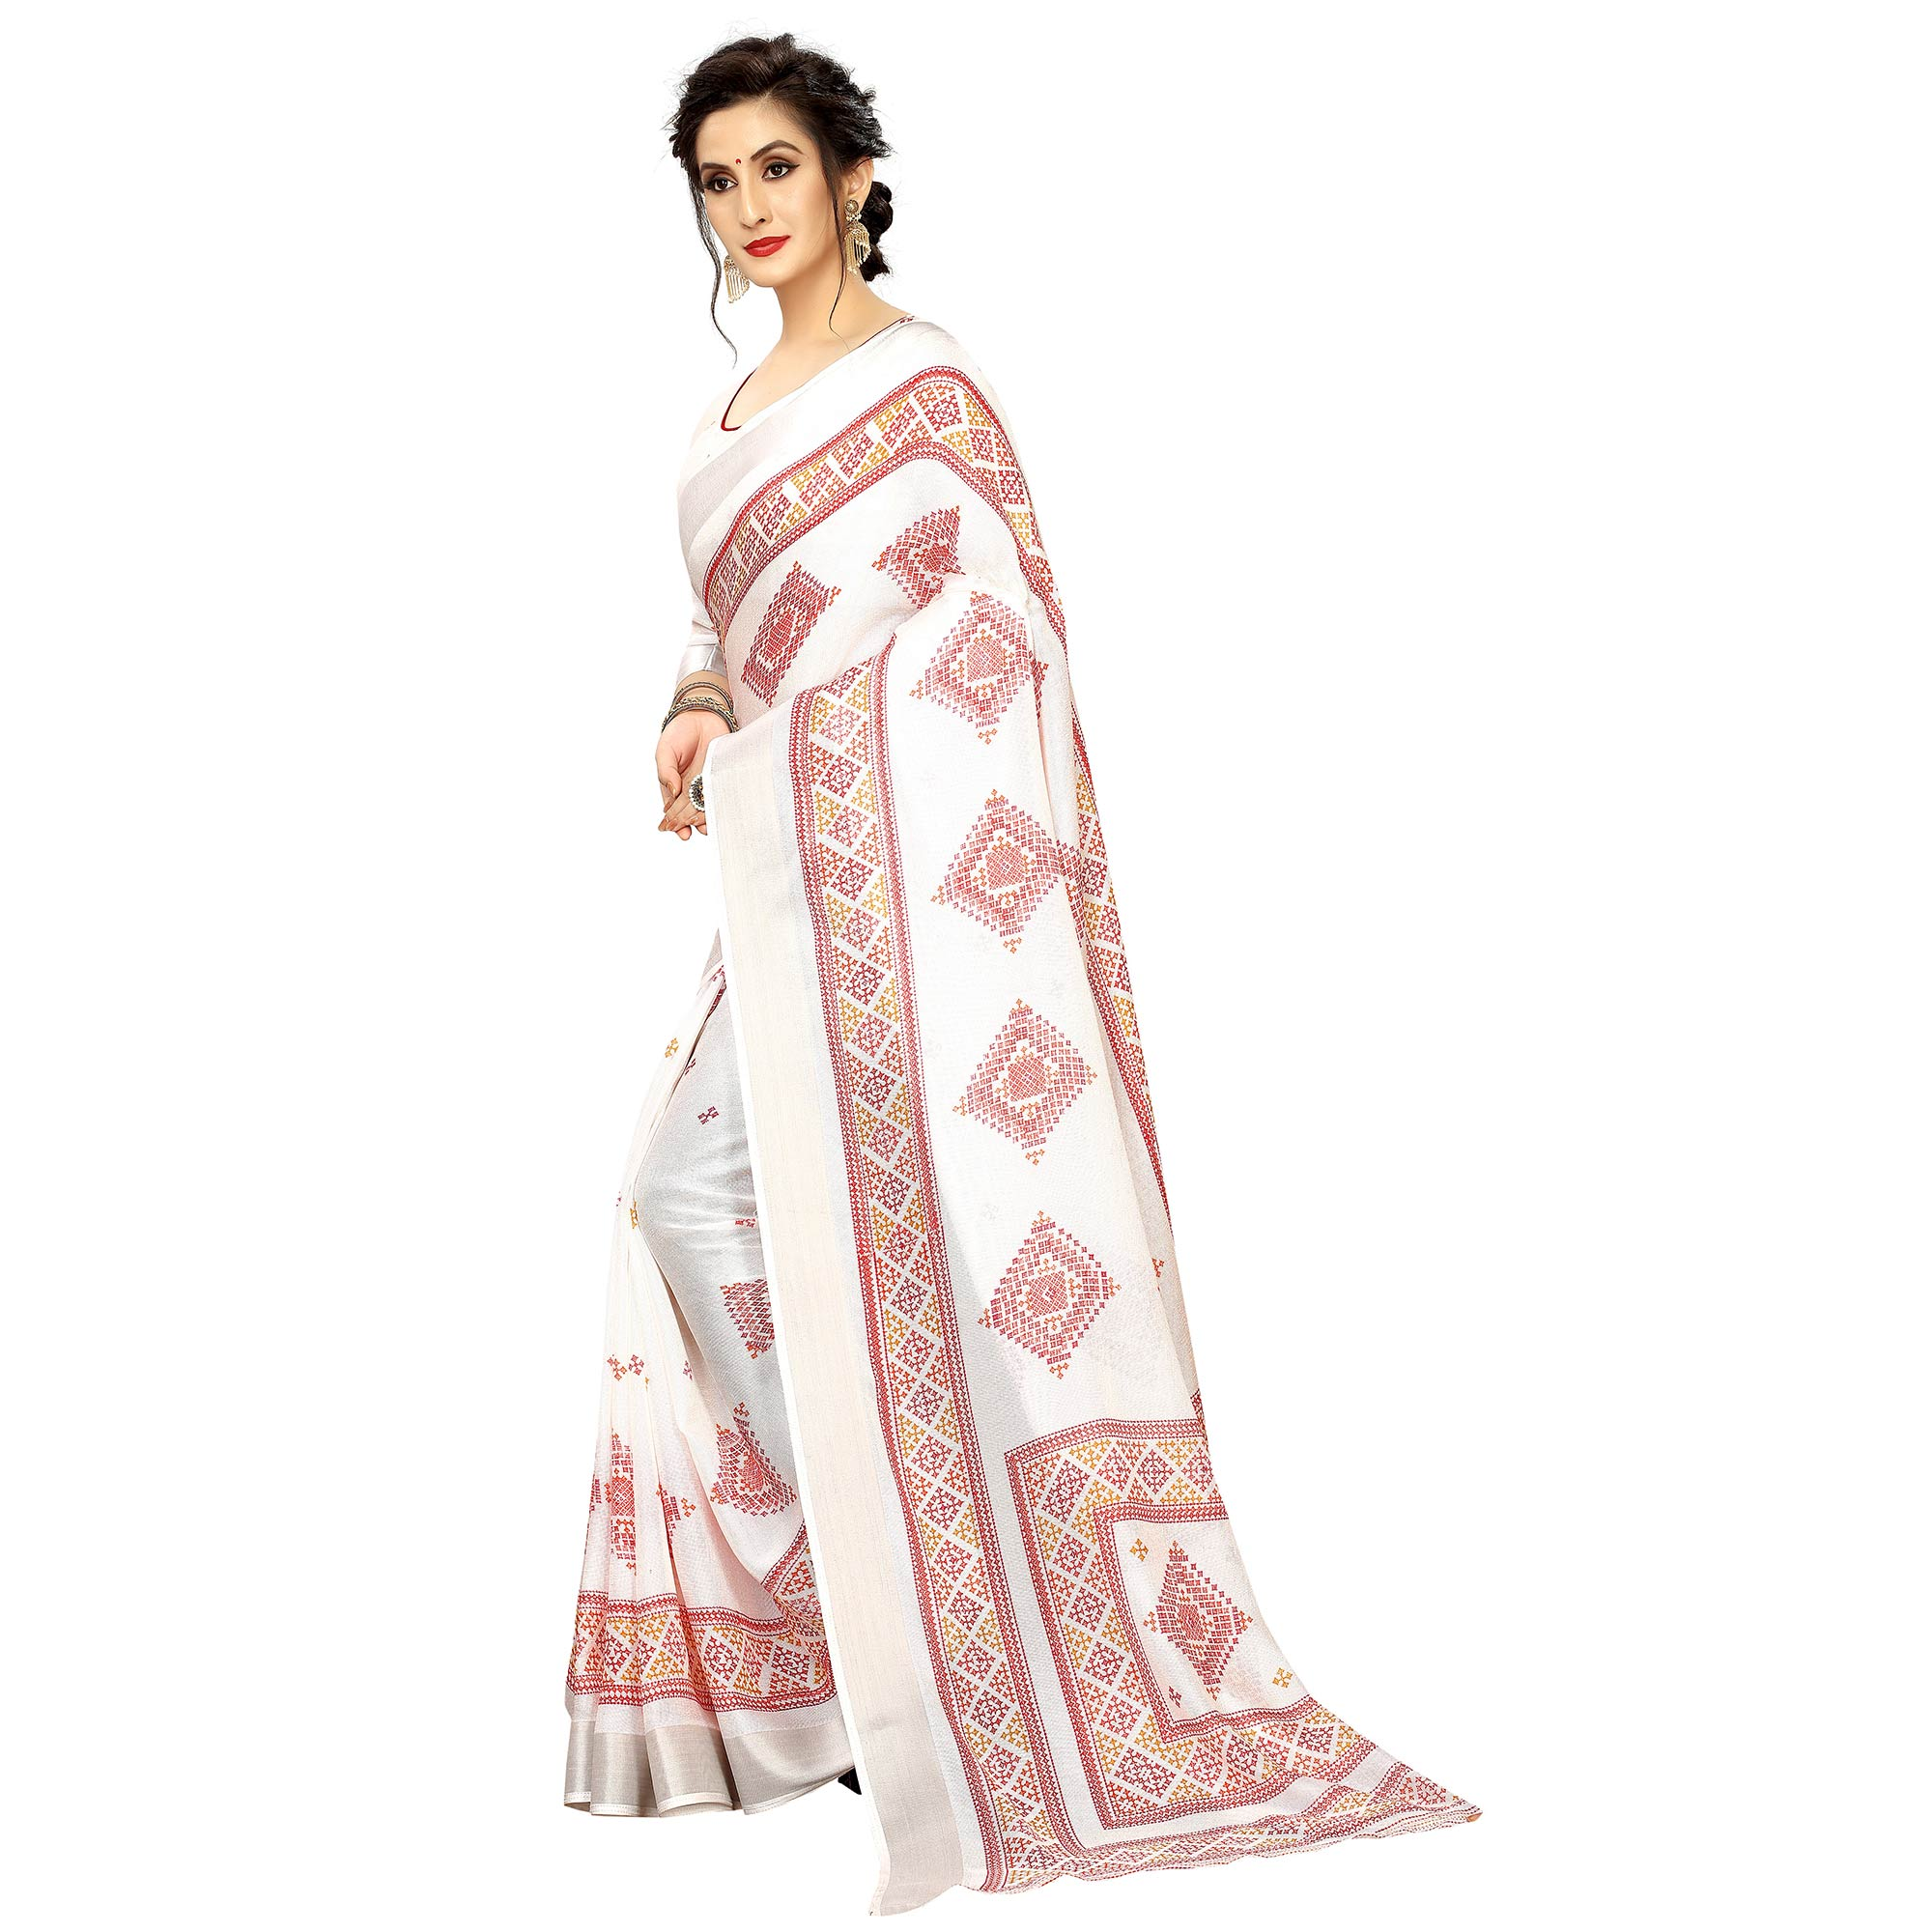 Engrossing White Colored Casual Printed Linen Saree